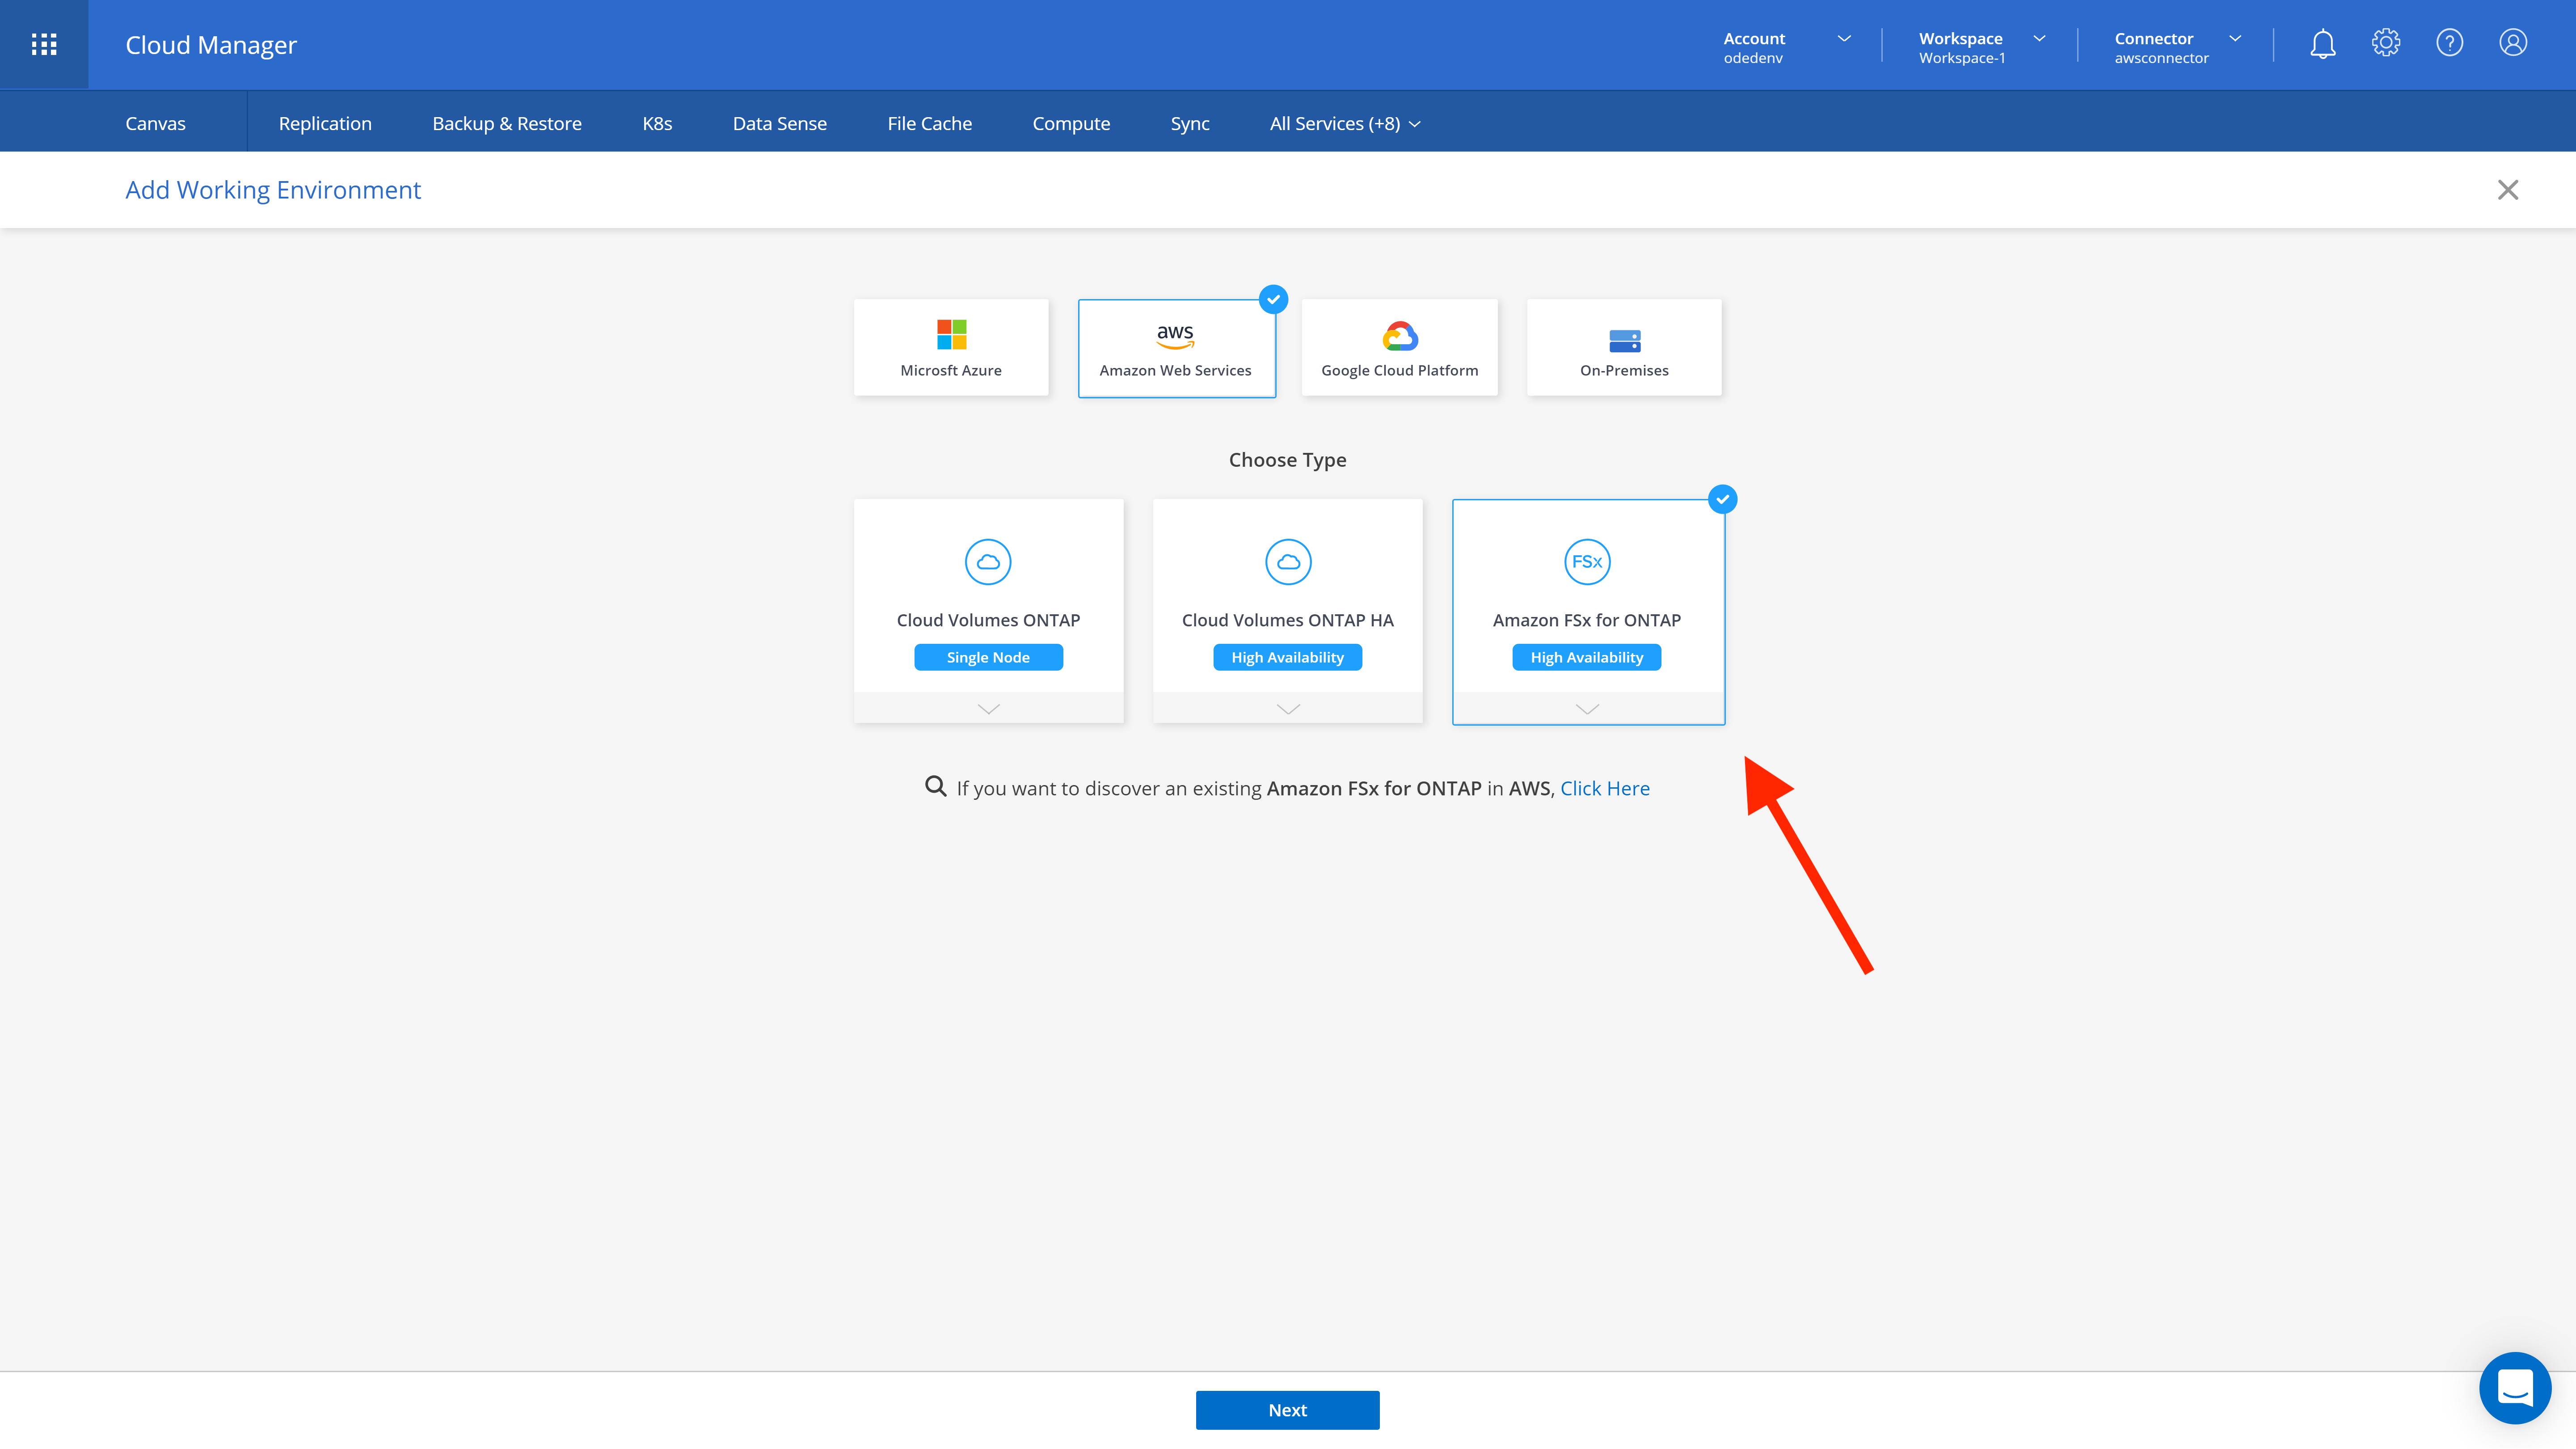 staging.cloudmanager.netapp.com_add-working-environment_choose-type(AOC) (2)